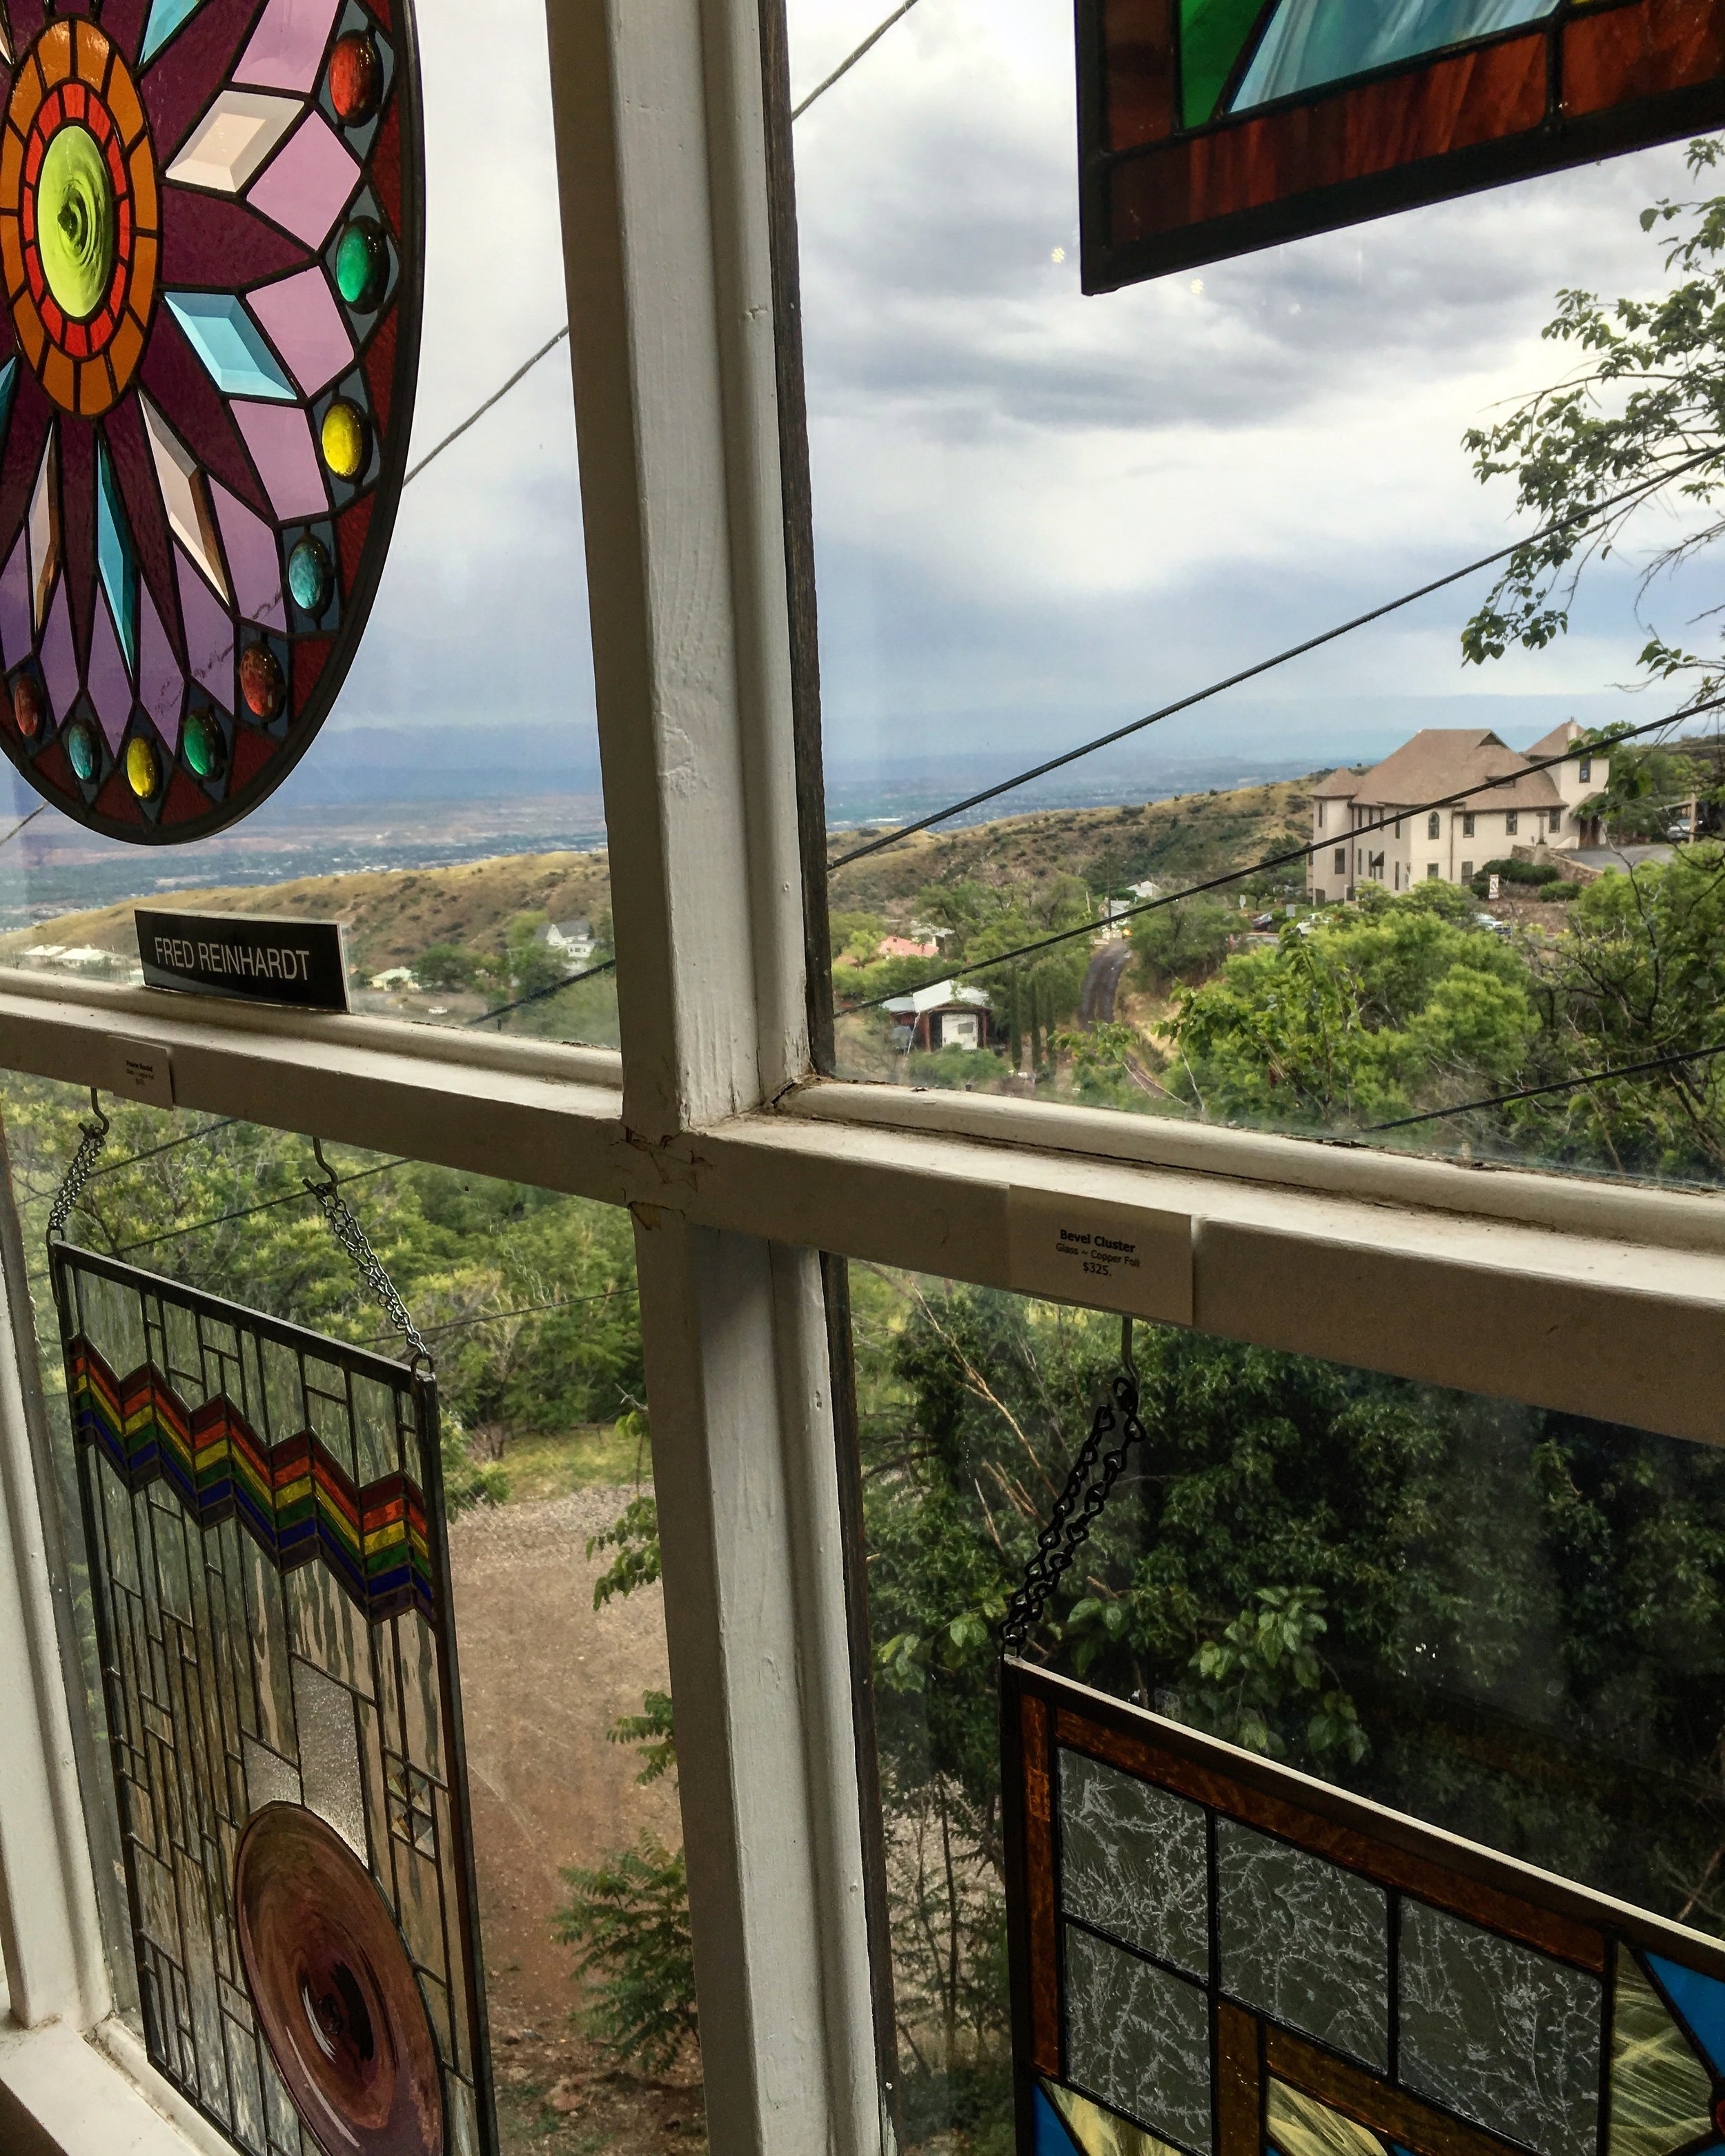 The windows of Jerome Artists Cooperative Gallery